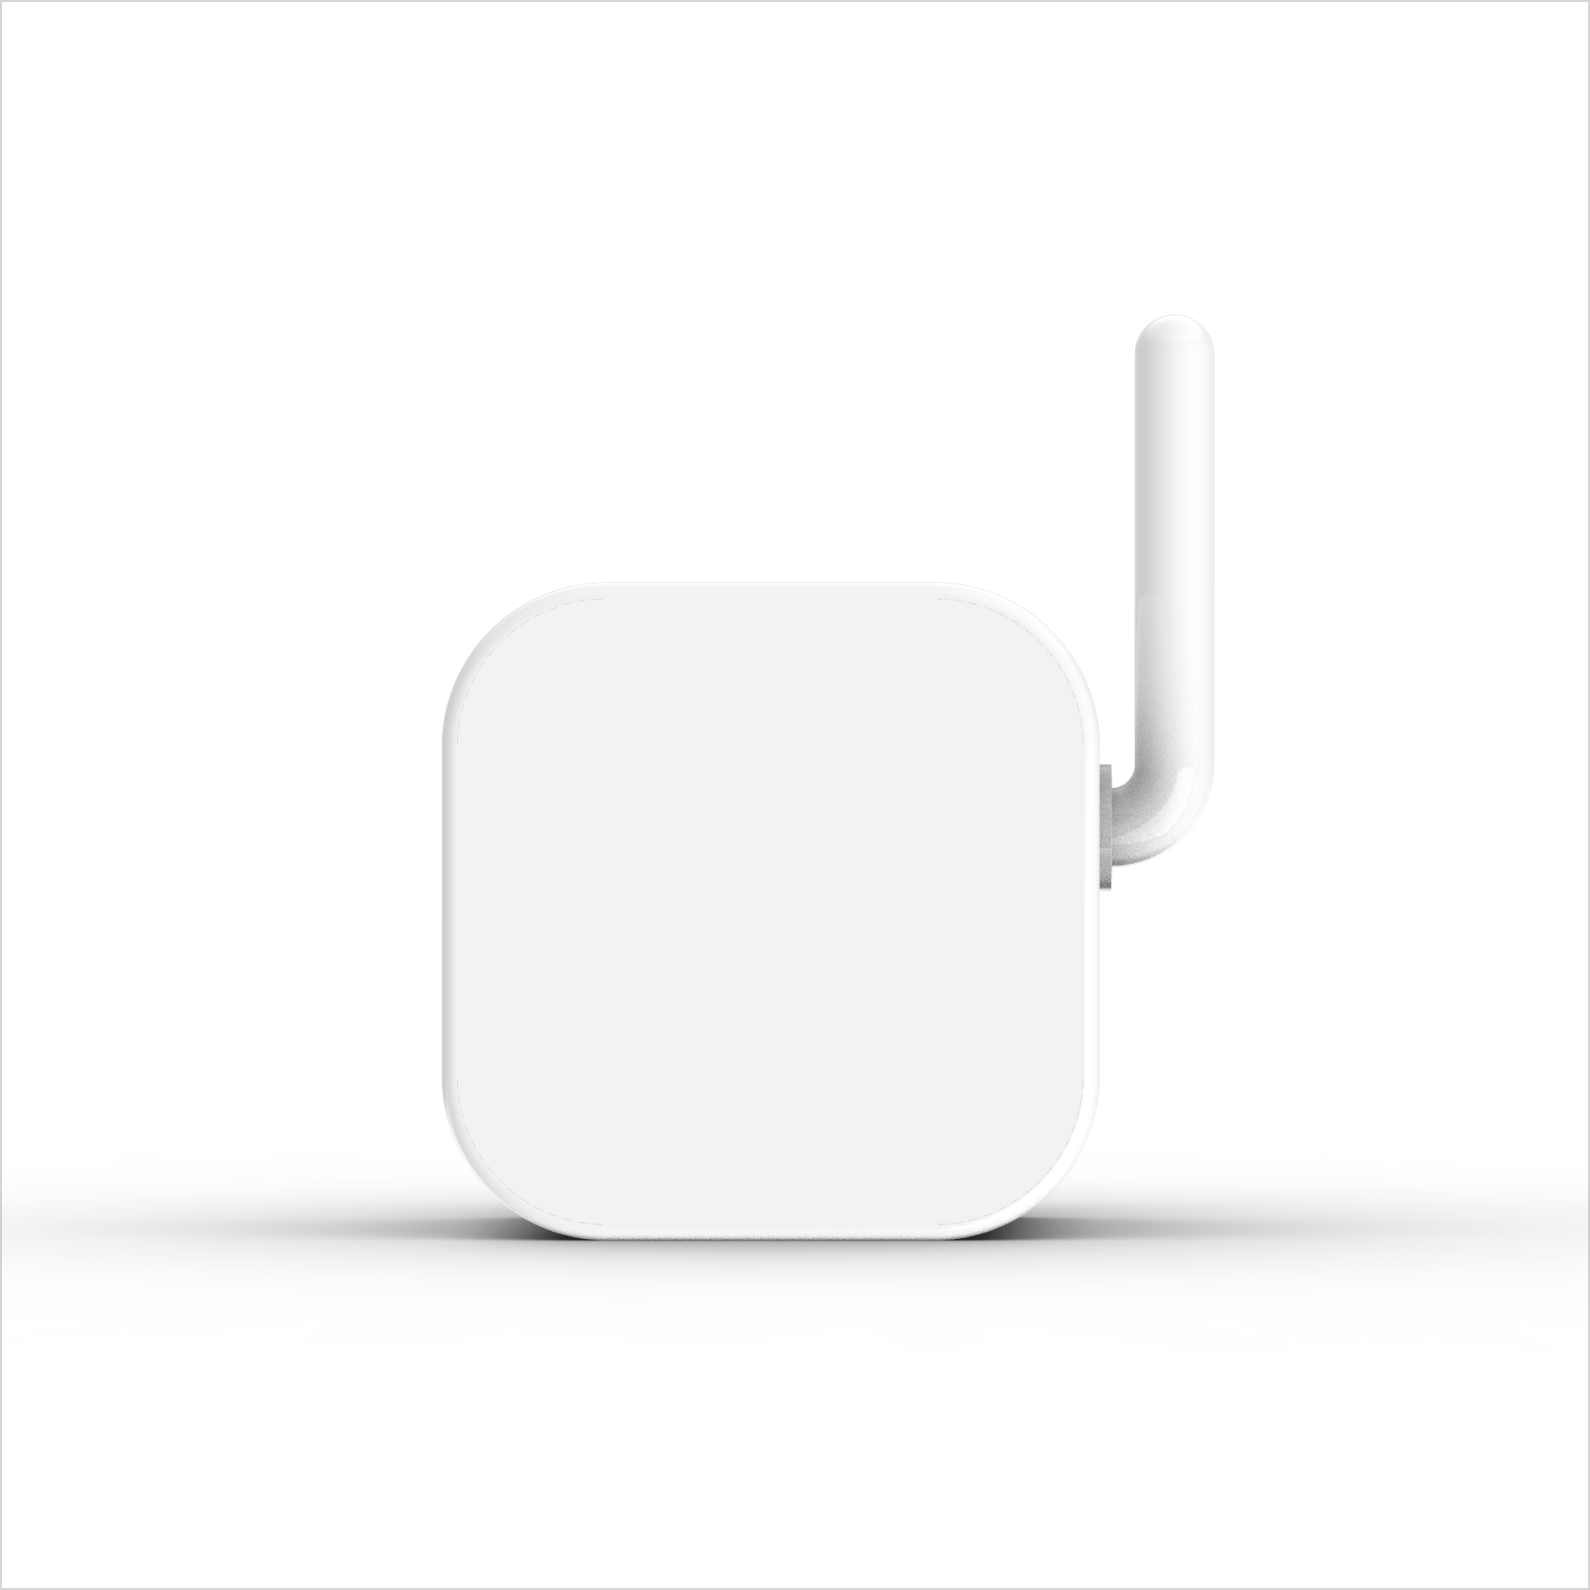 Sif Pro White Front View